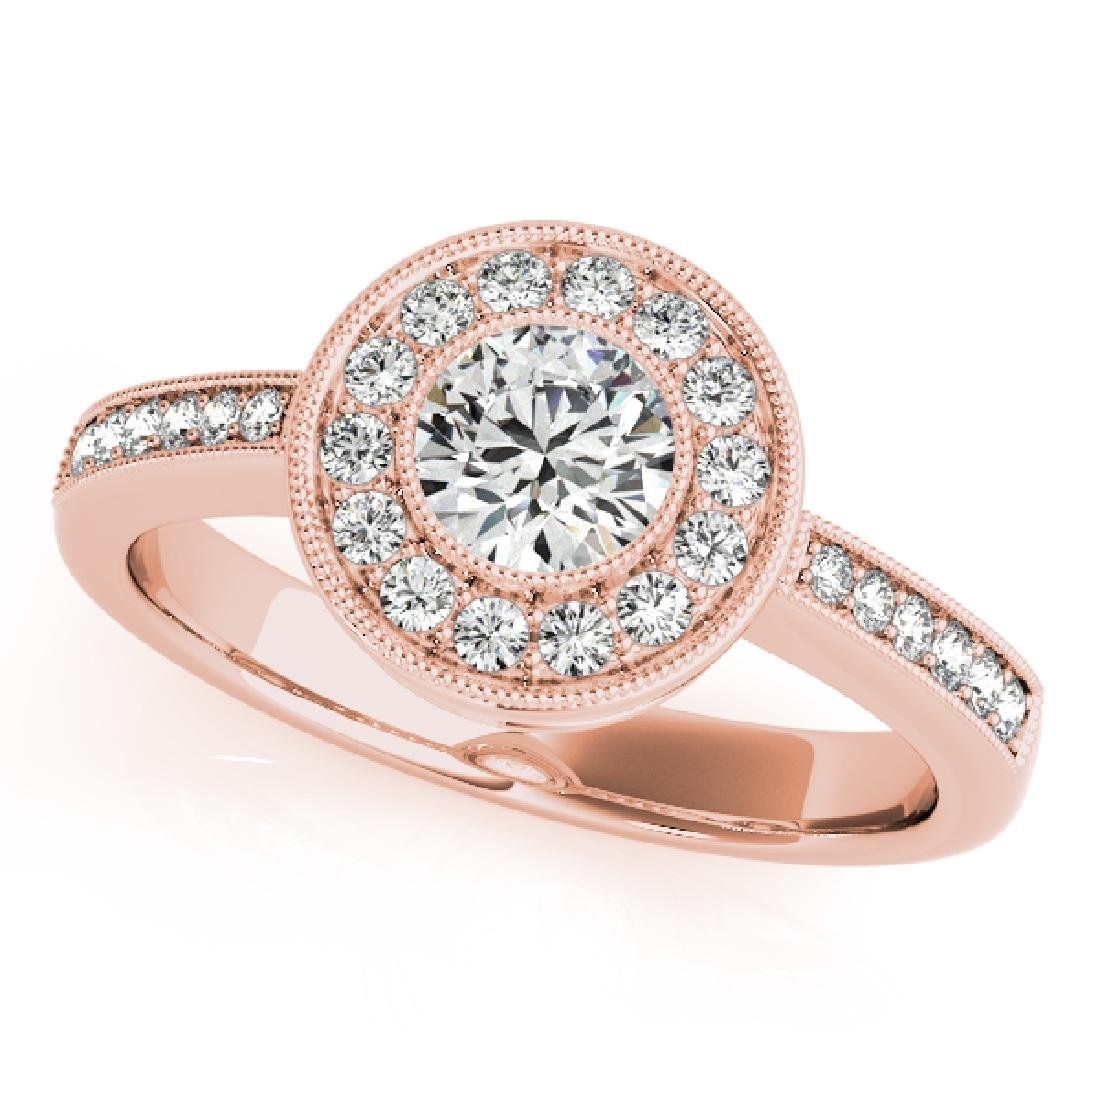 CERTIFIED 18K ROSE GOLD 1.20 CT G-H/VS-SI1 DIAMOND HALO